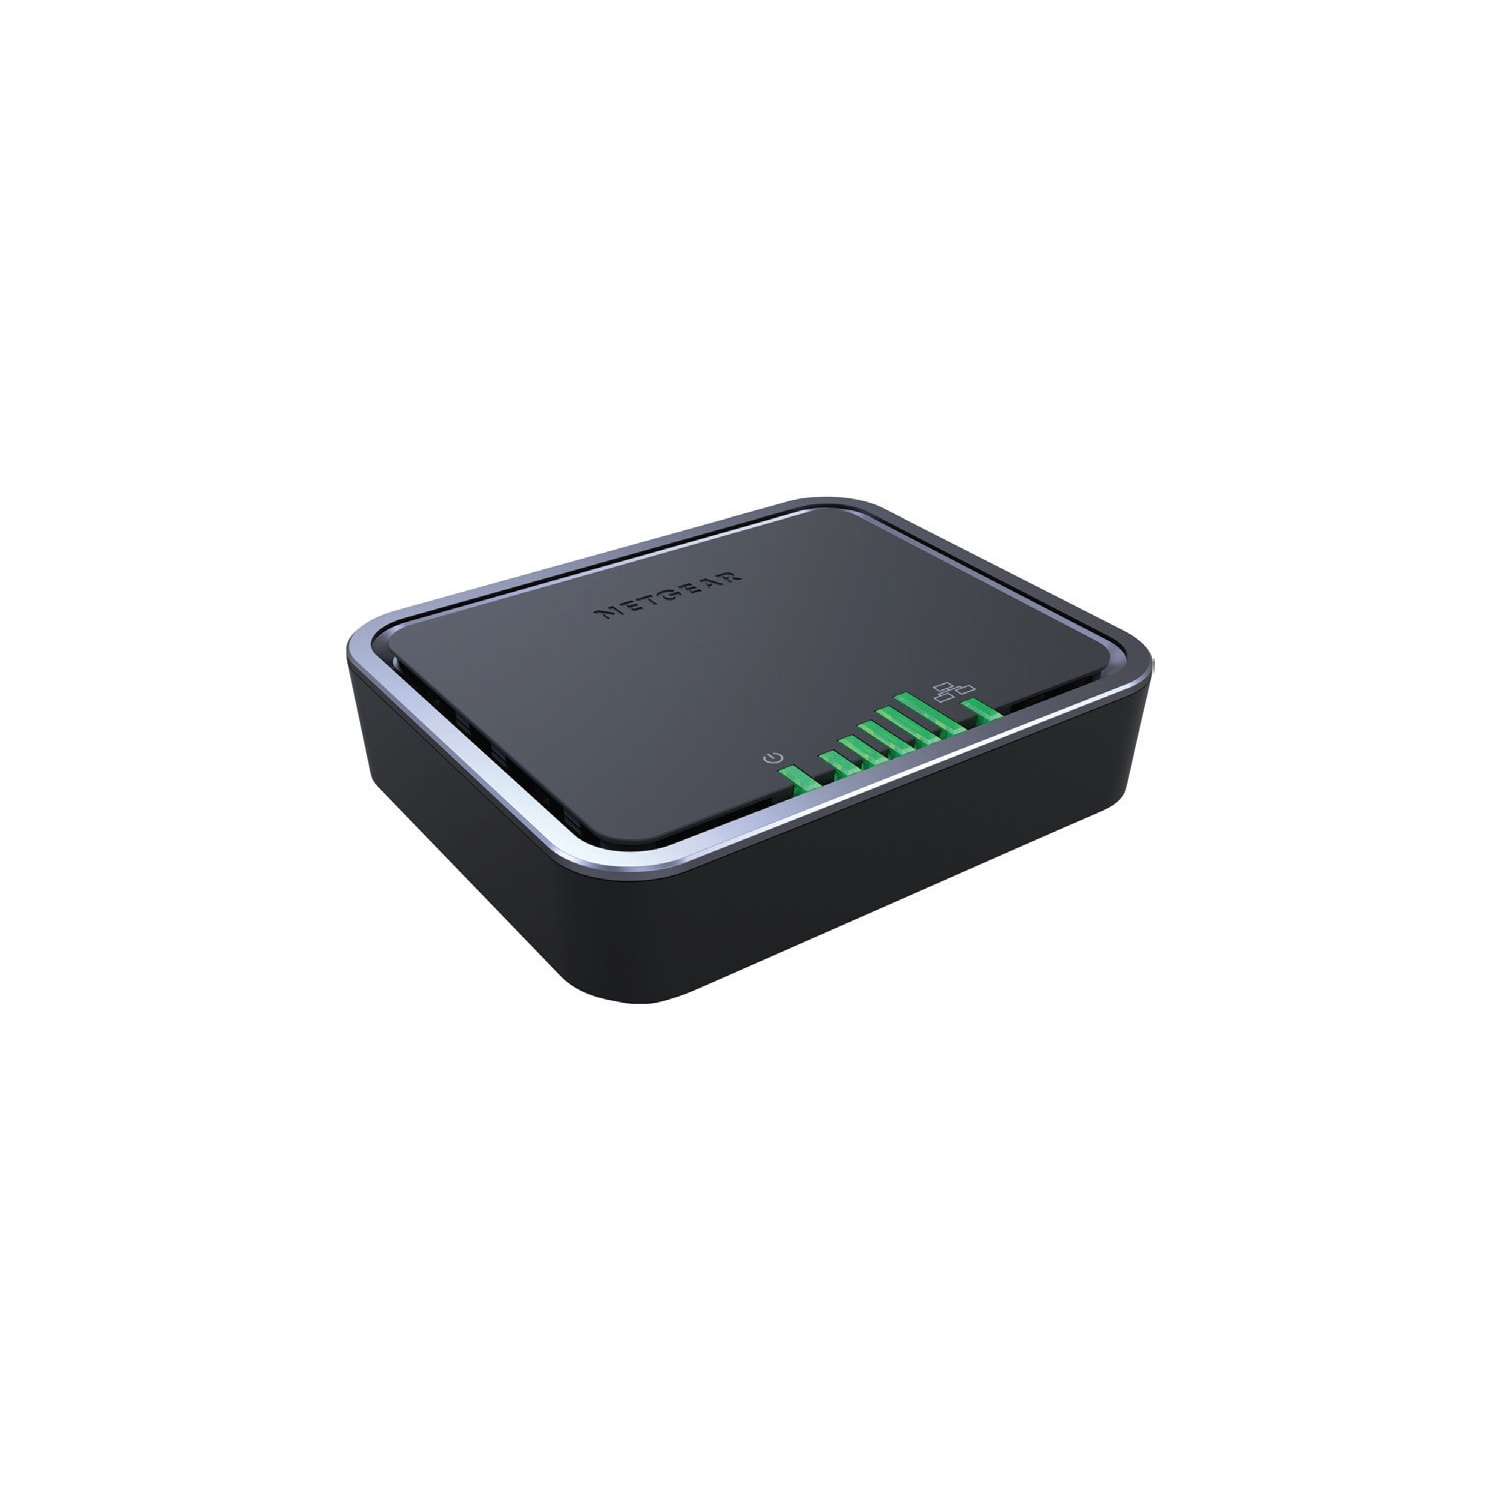 Buy Netgear LB2120 Cellular, Ethernet Modem/Wireless Router